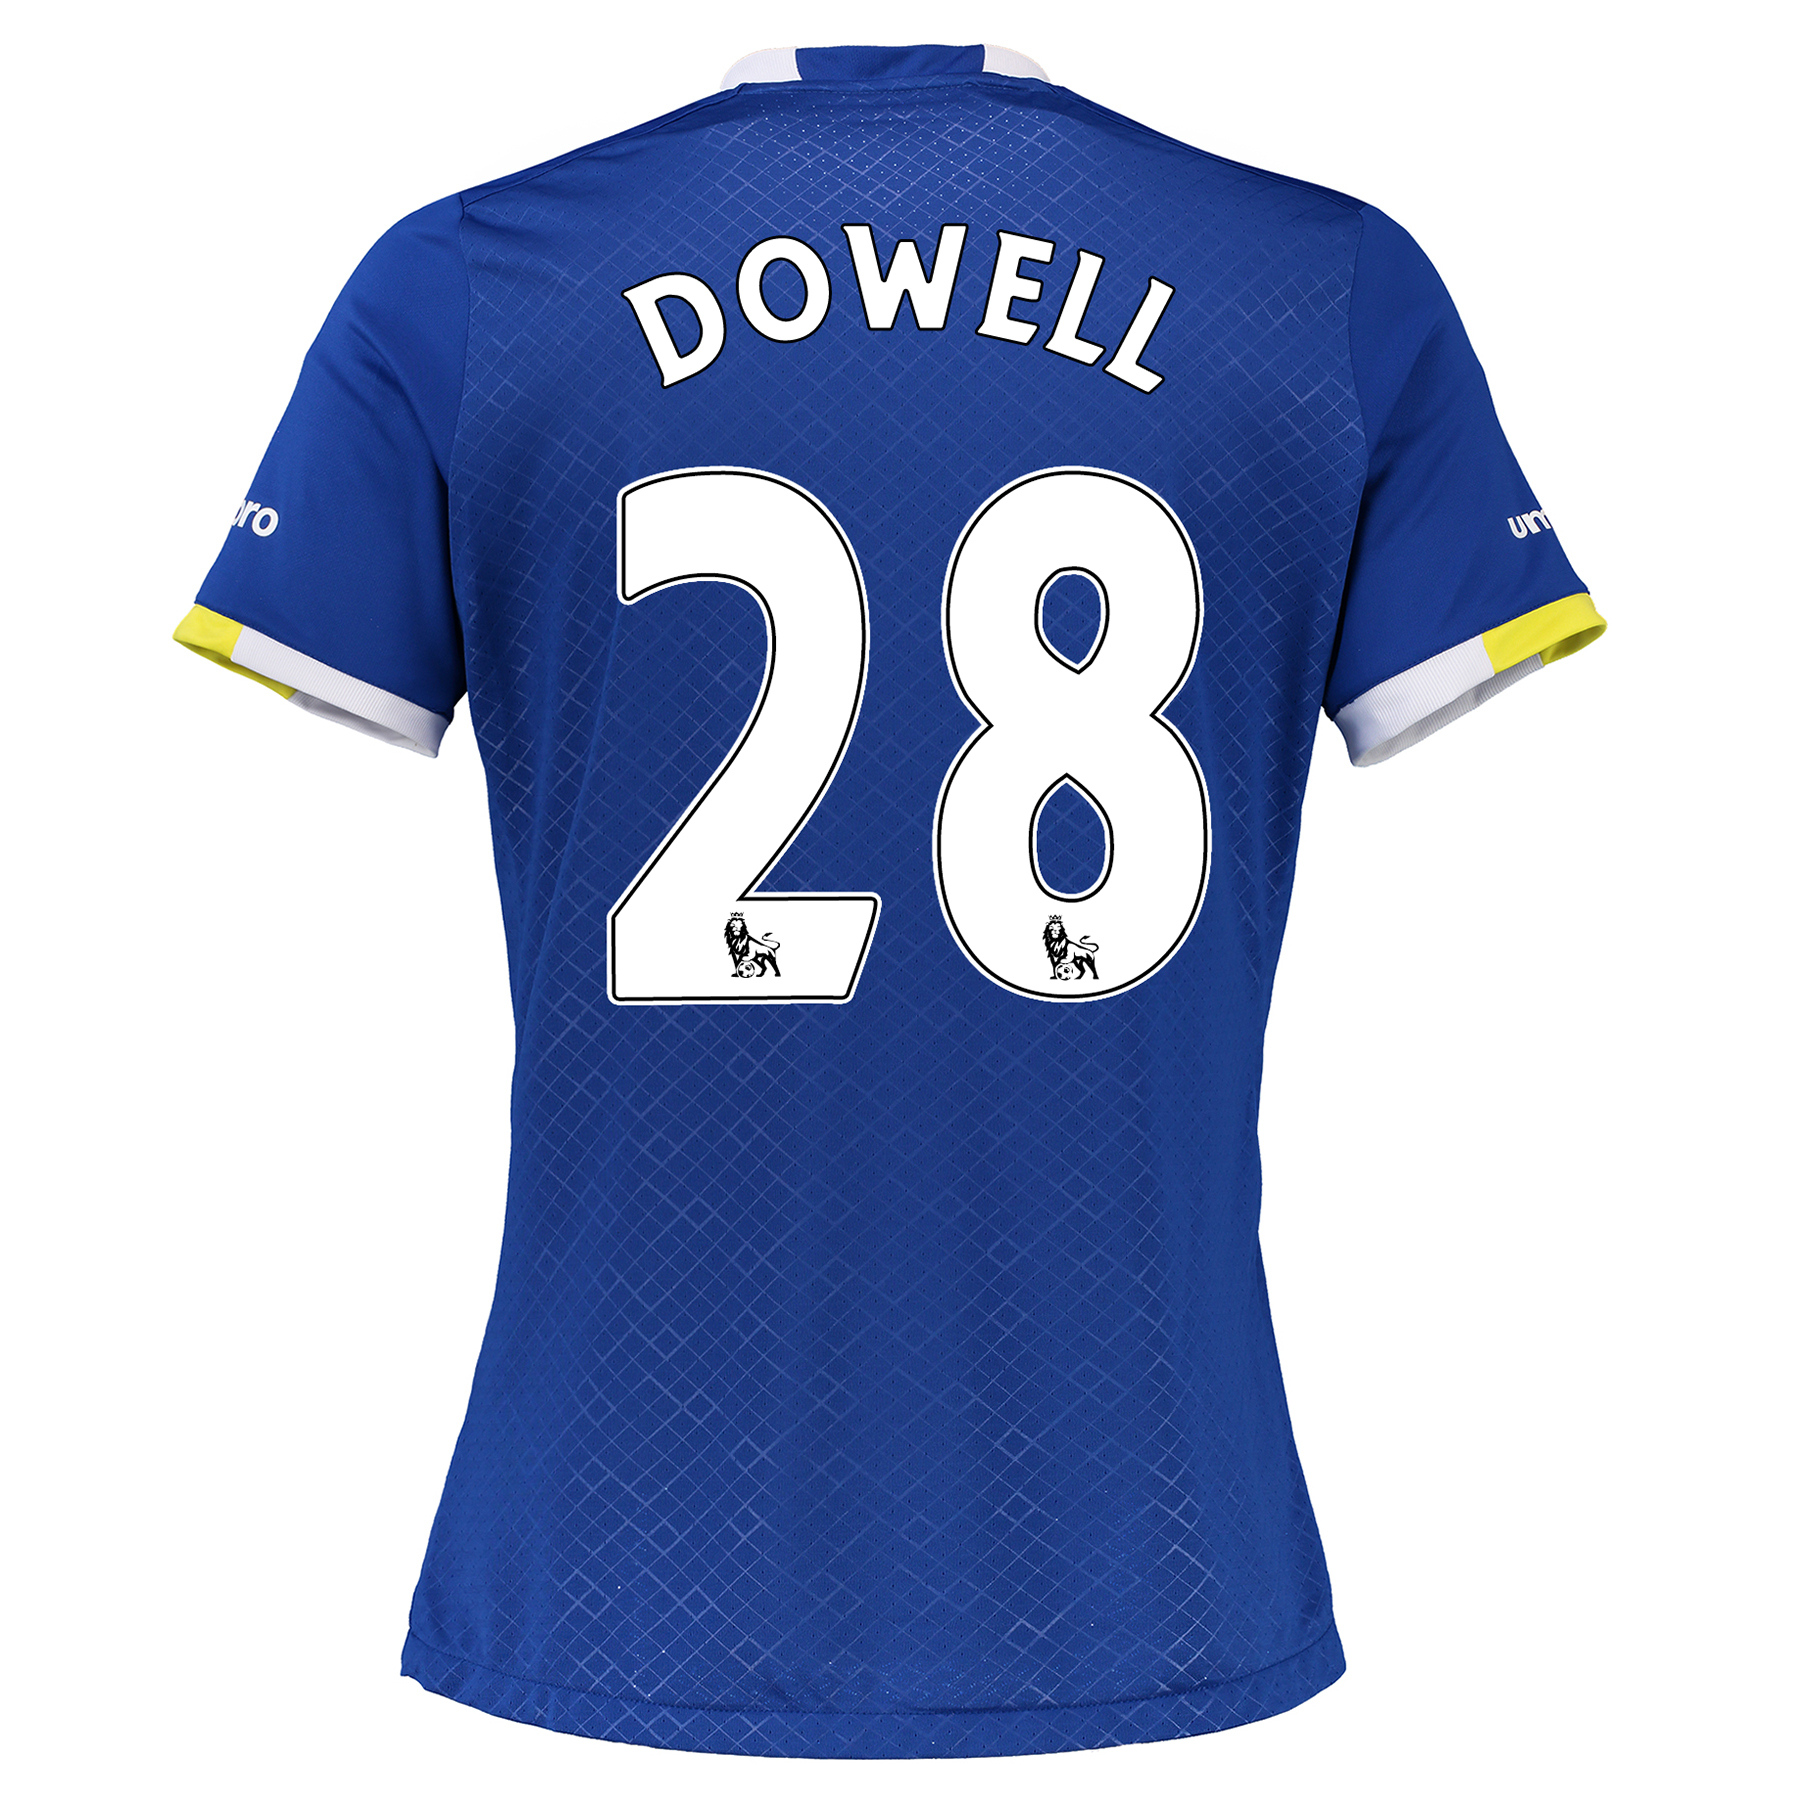 Everton Home Shirt 2016/17 - Womens with Dowell 28 printing